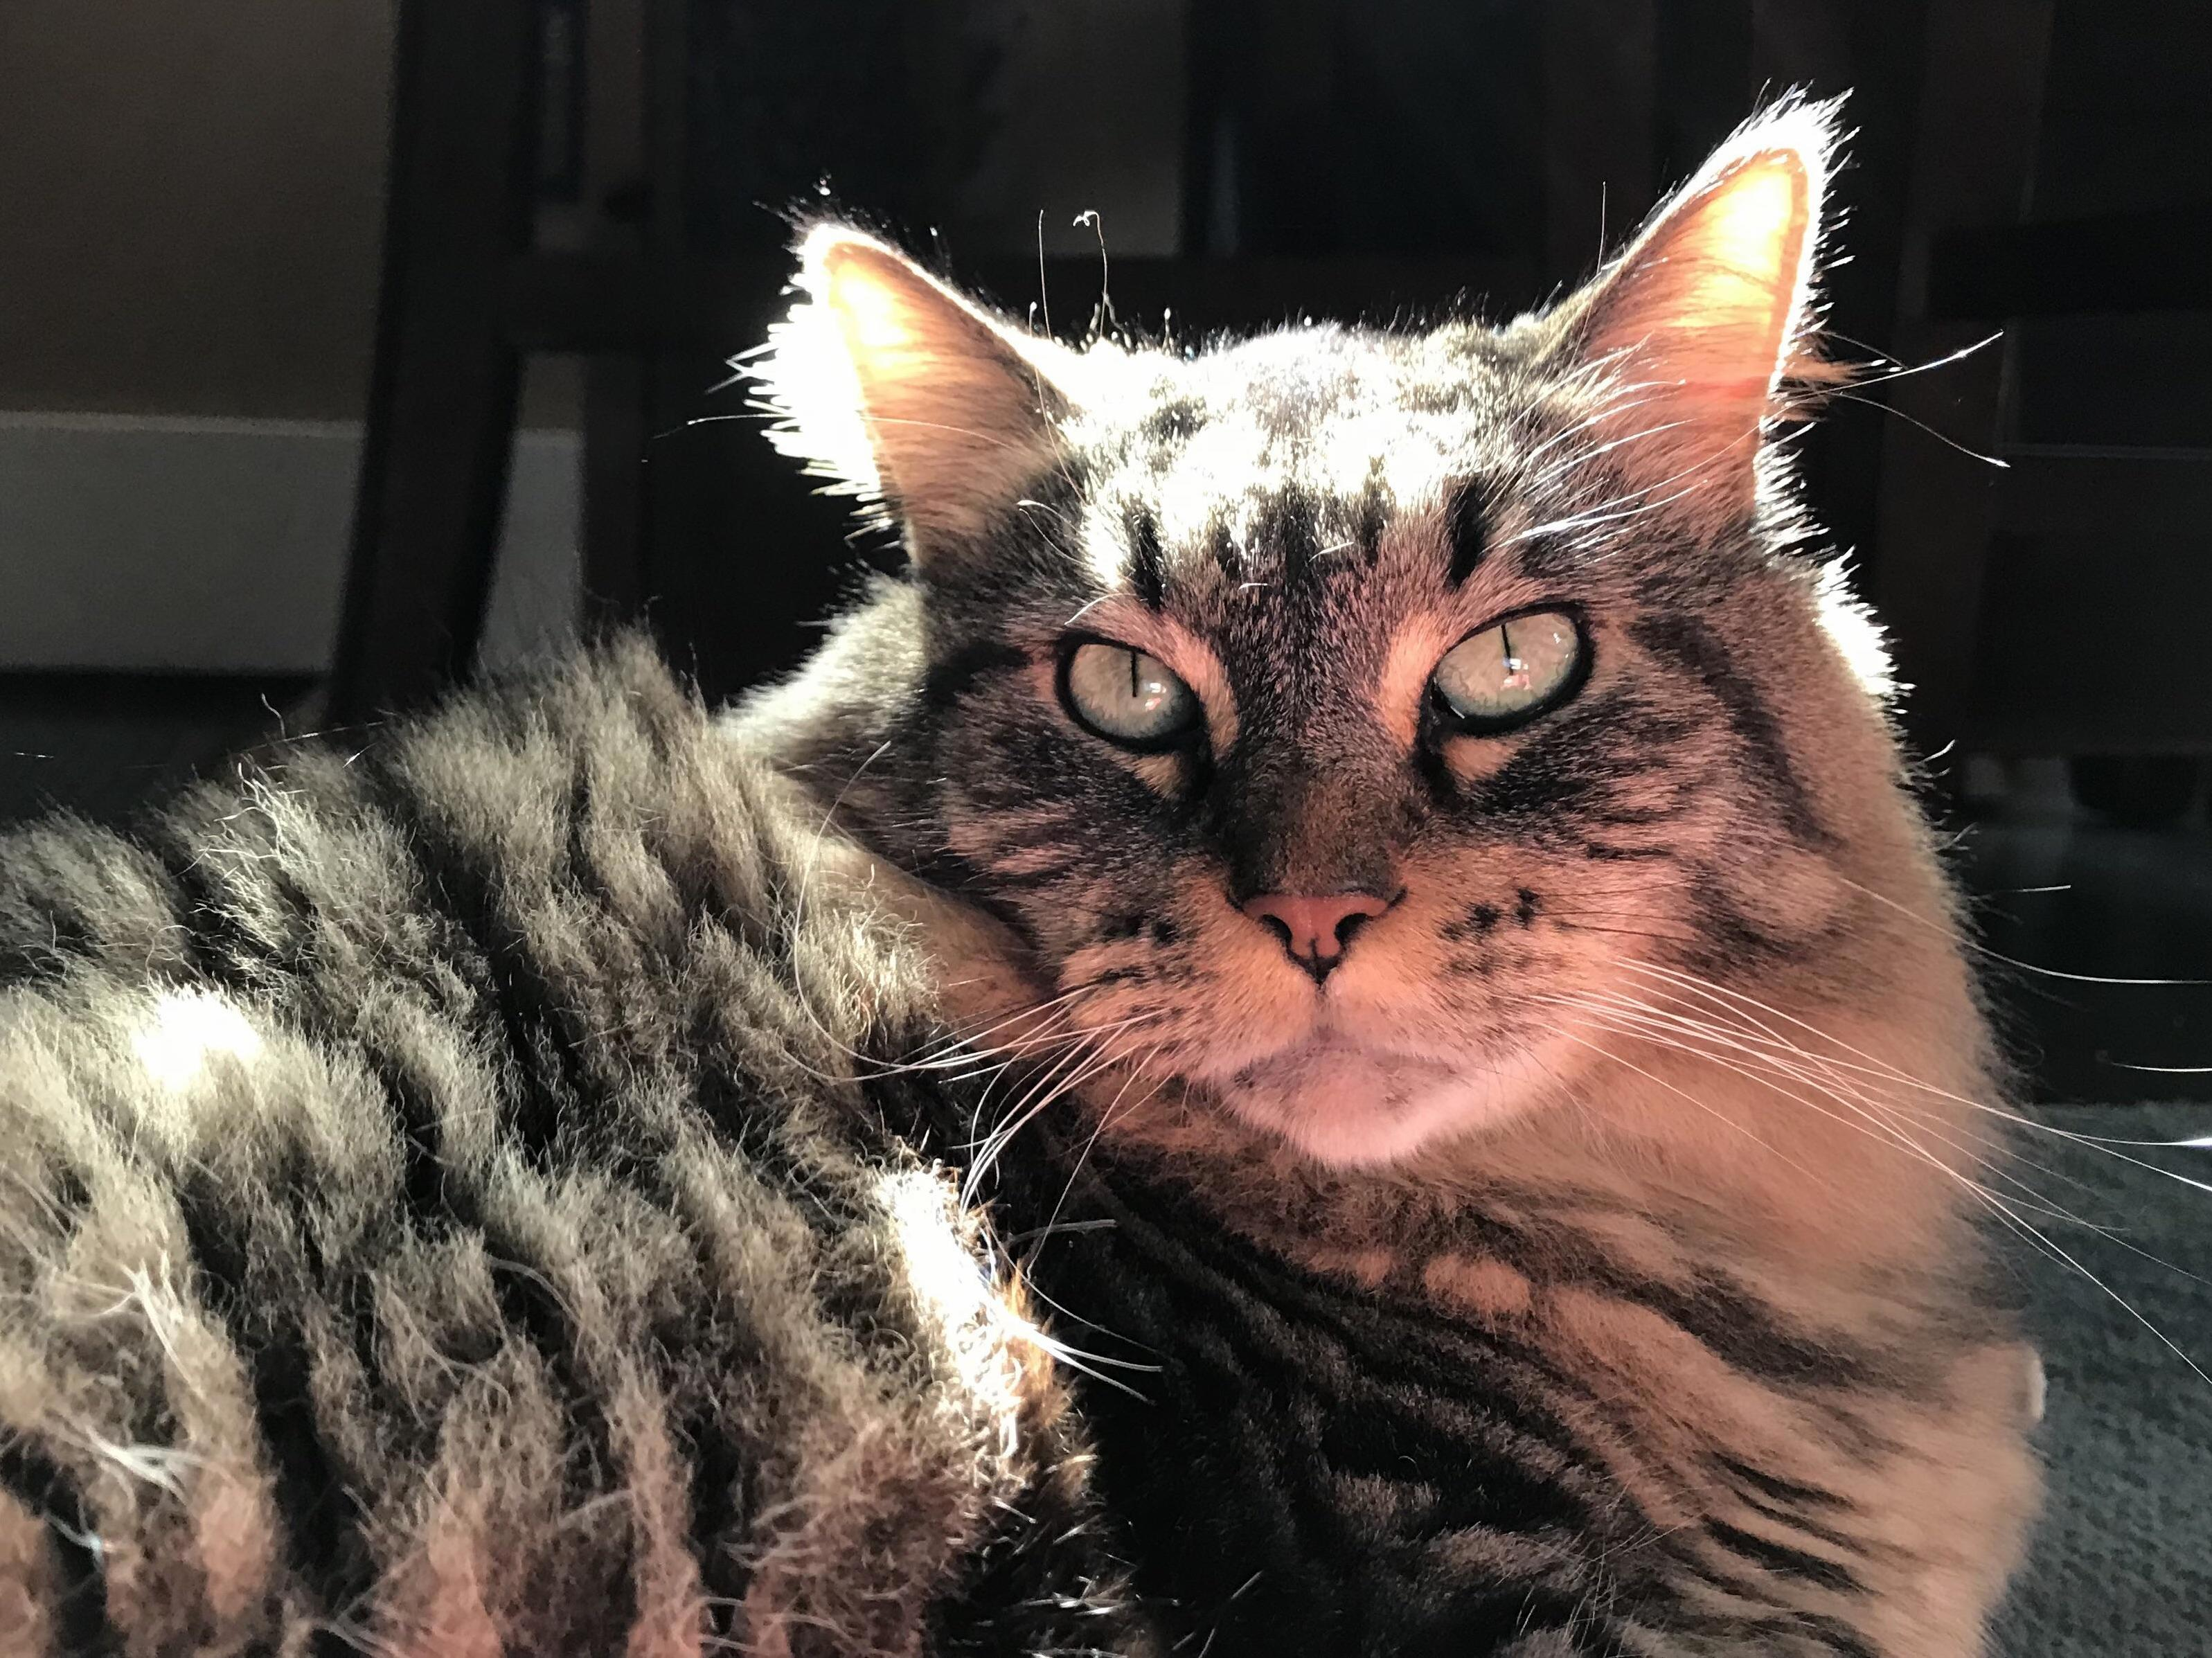 The way the light illuminated my boys earfluff.